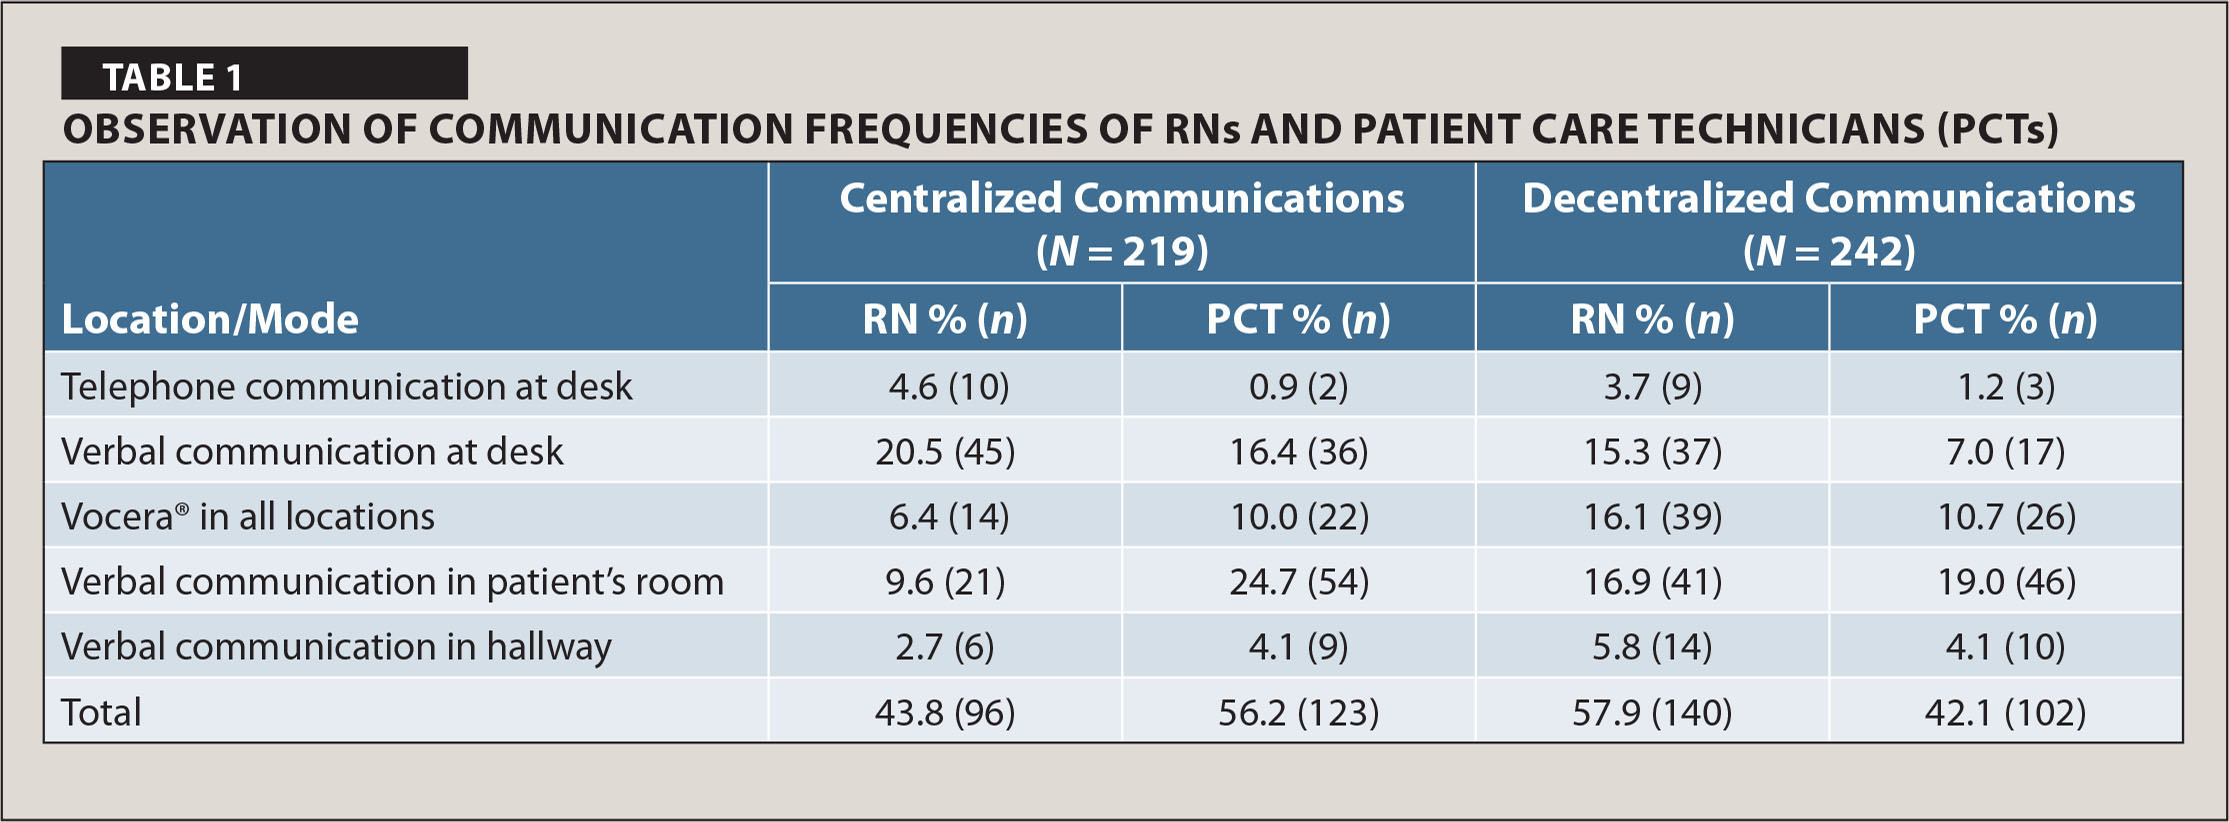 Observation of Communication Frequencies of RNS and Patient Care Technicians (PCTs)